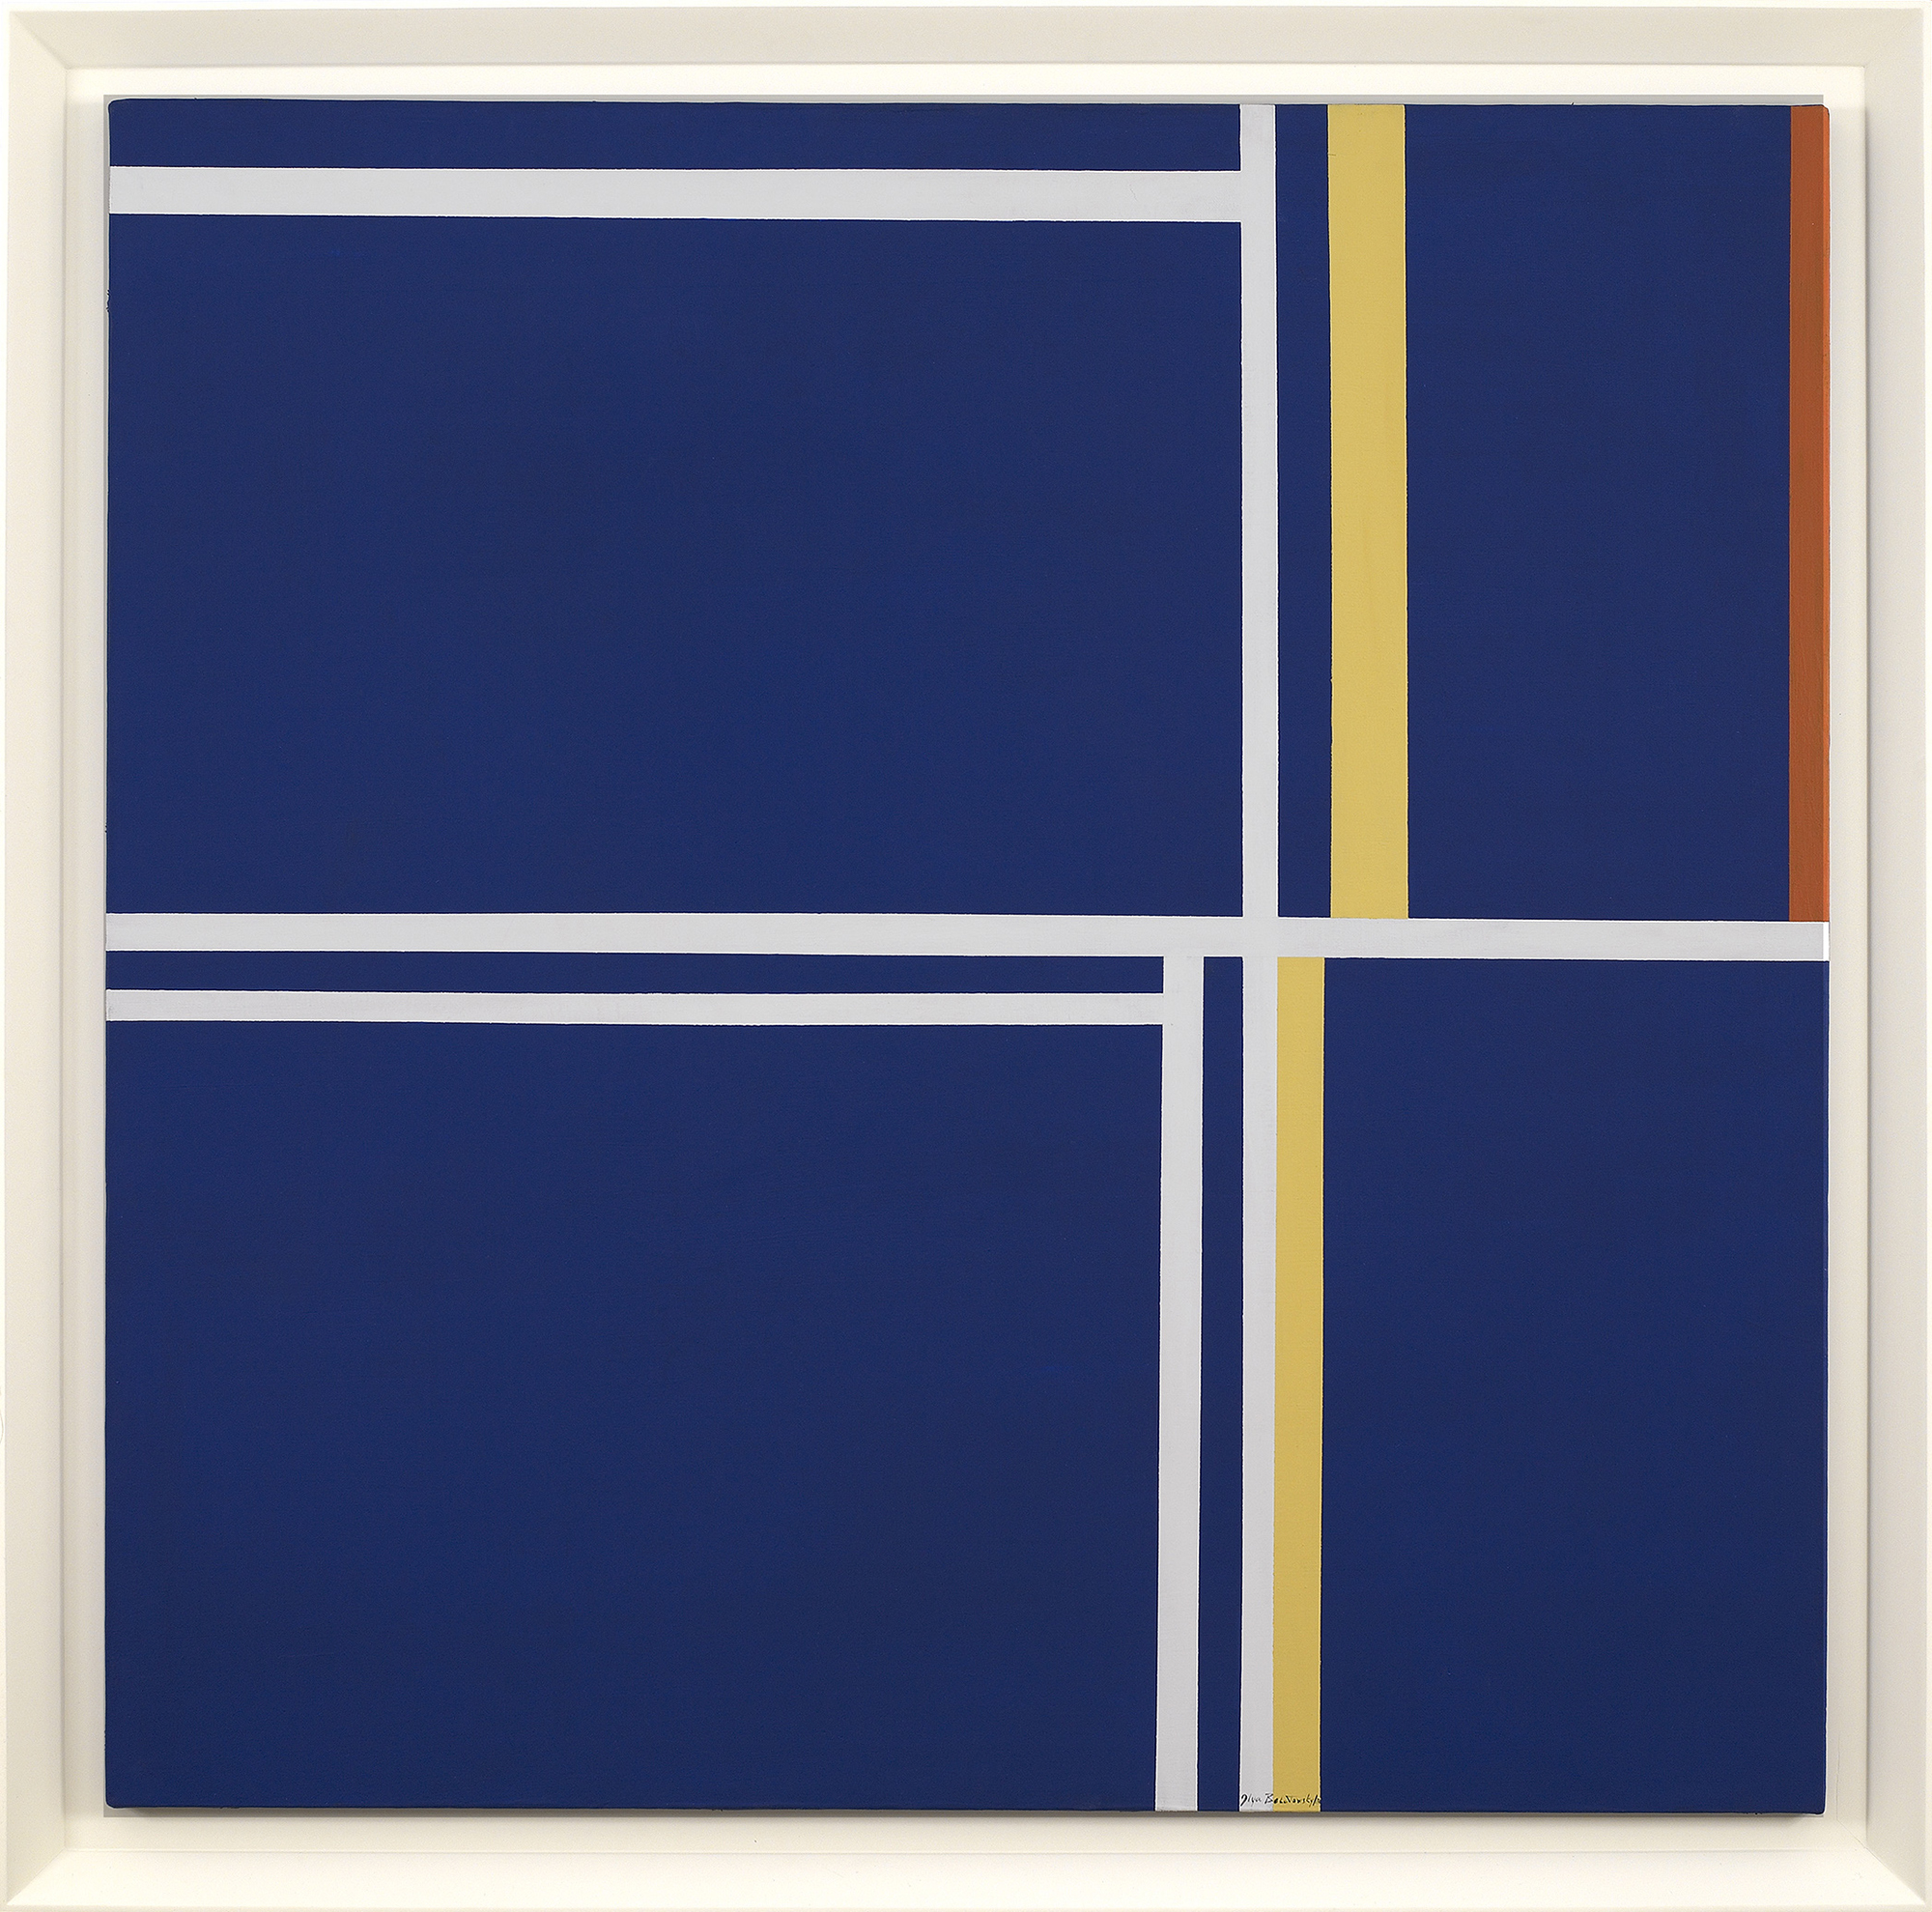 SOLD  Abstraction in Square, 1978  , oil on canvas, 40 x 40 inches